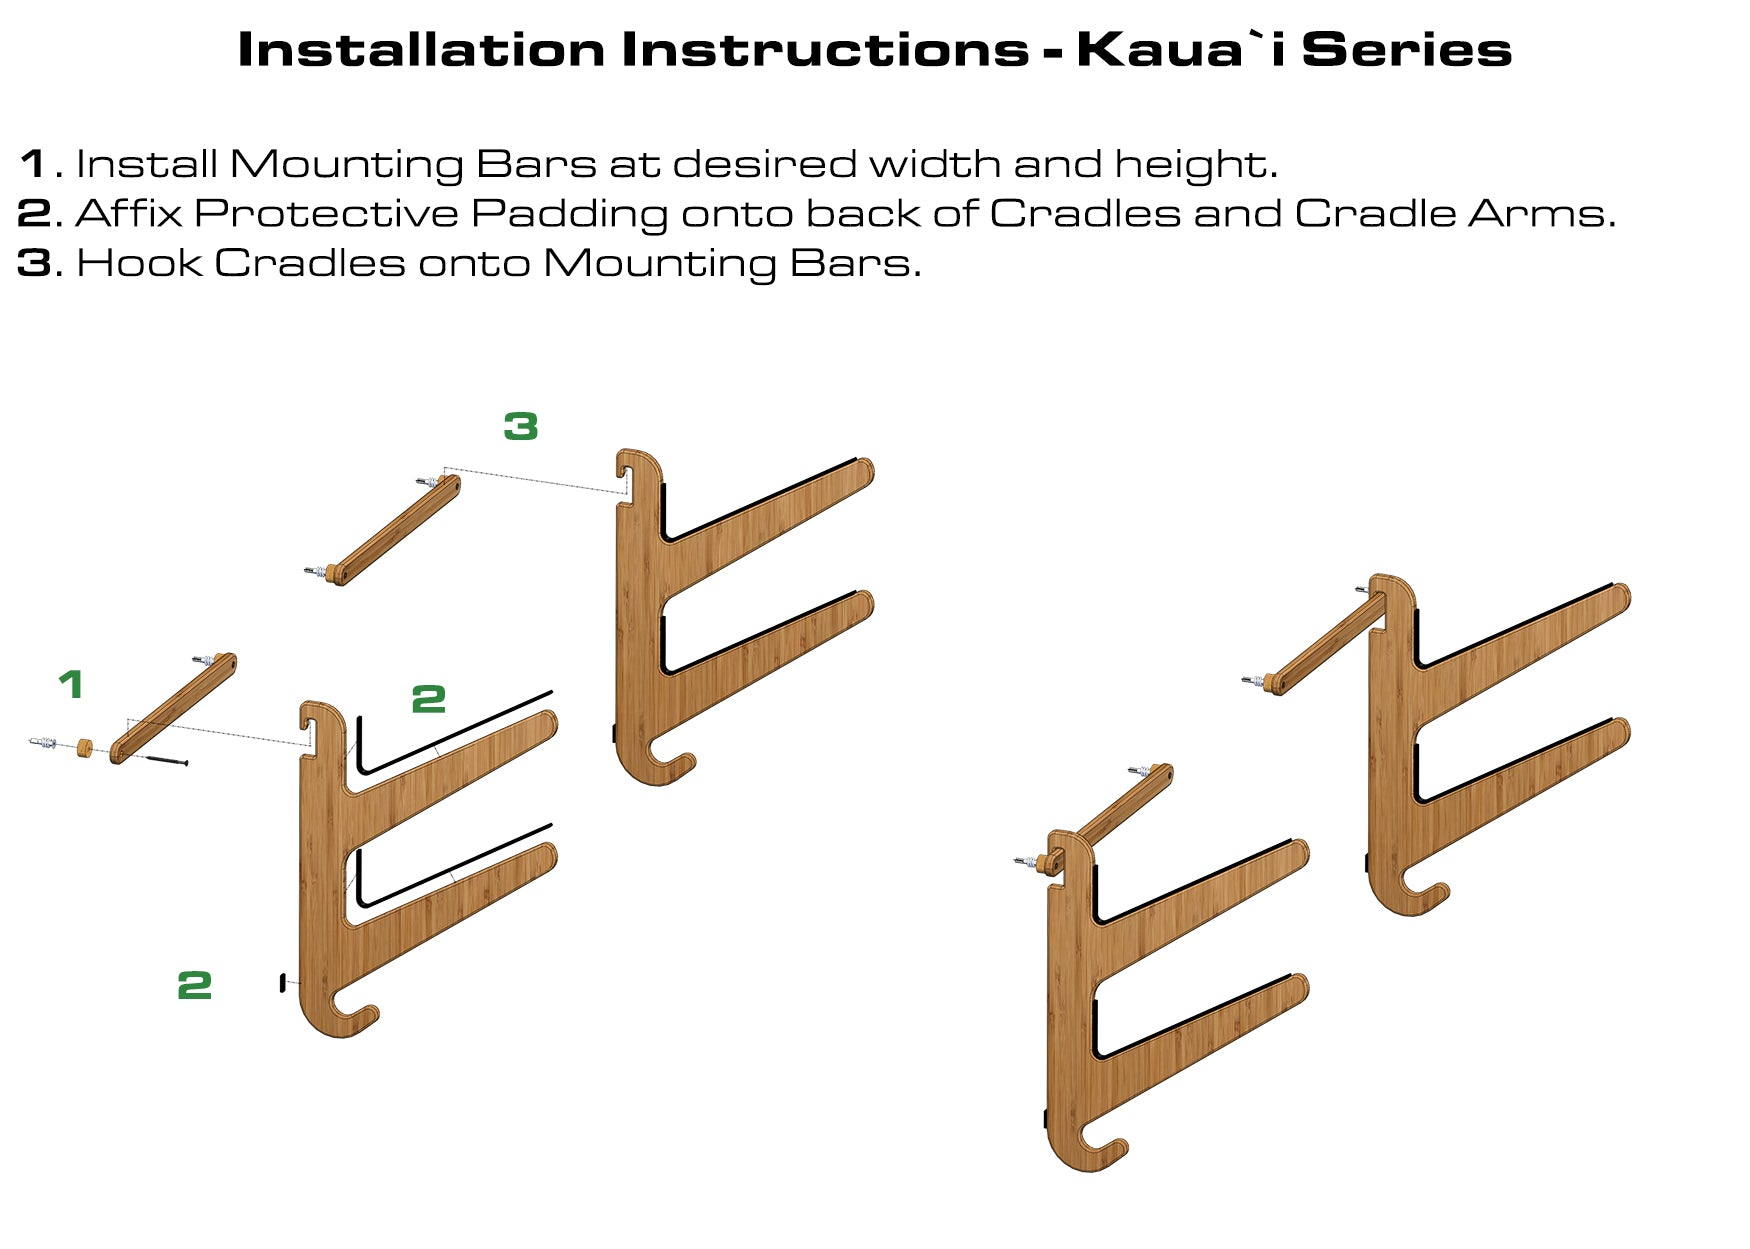 Surfboard Rack Installation Instructions - Grassracks Kaua'i Surfboard Rack